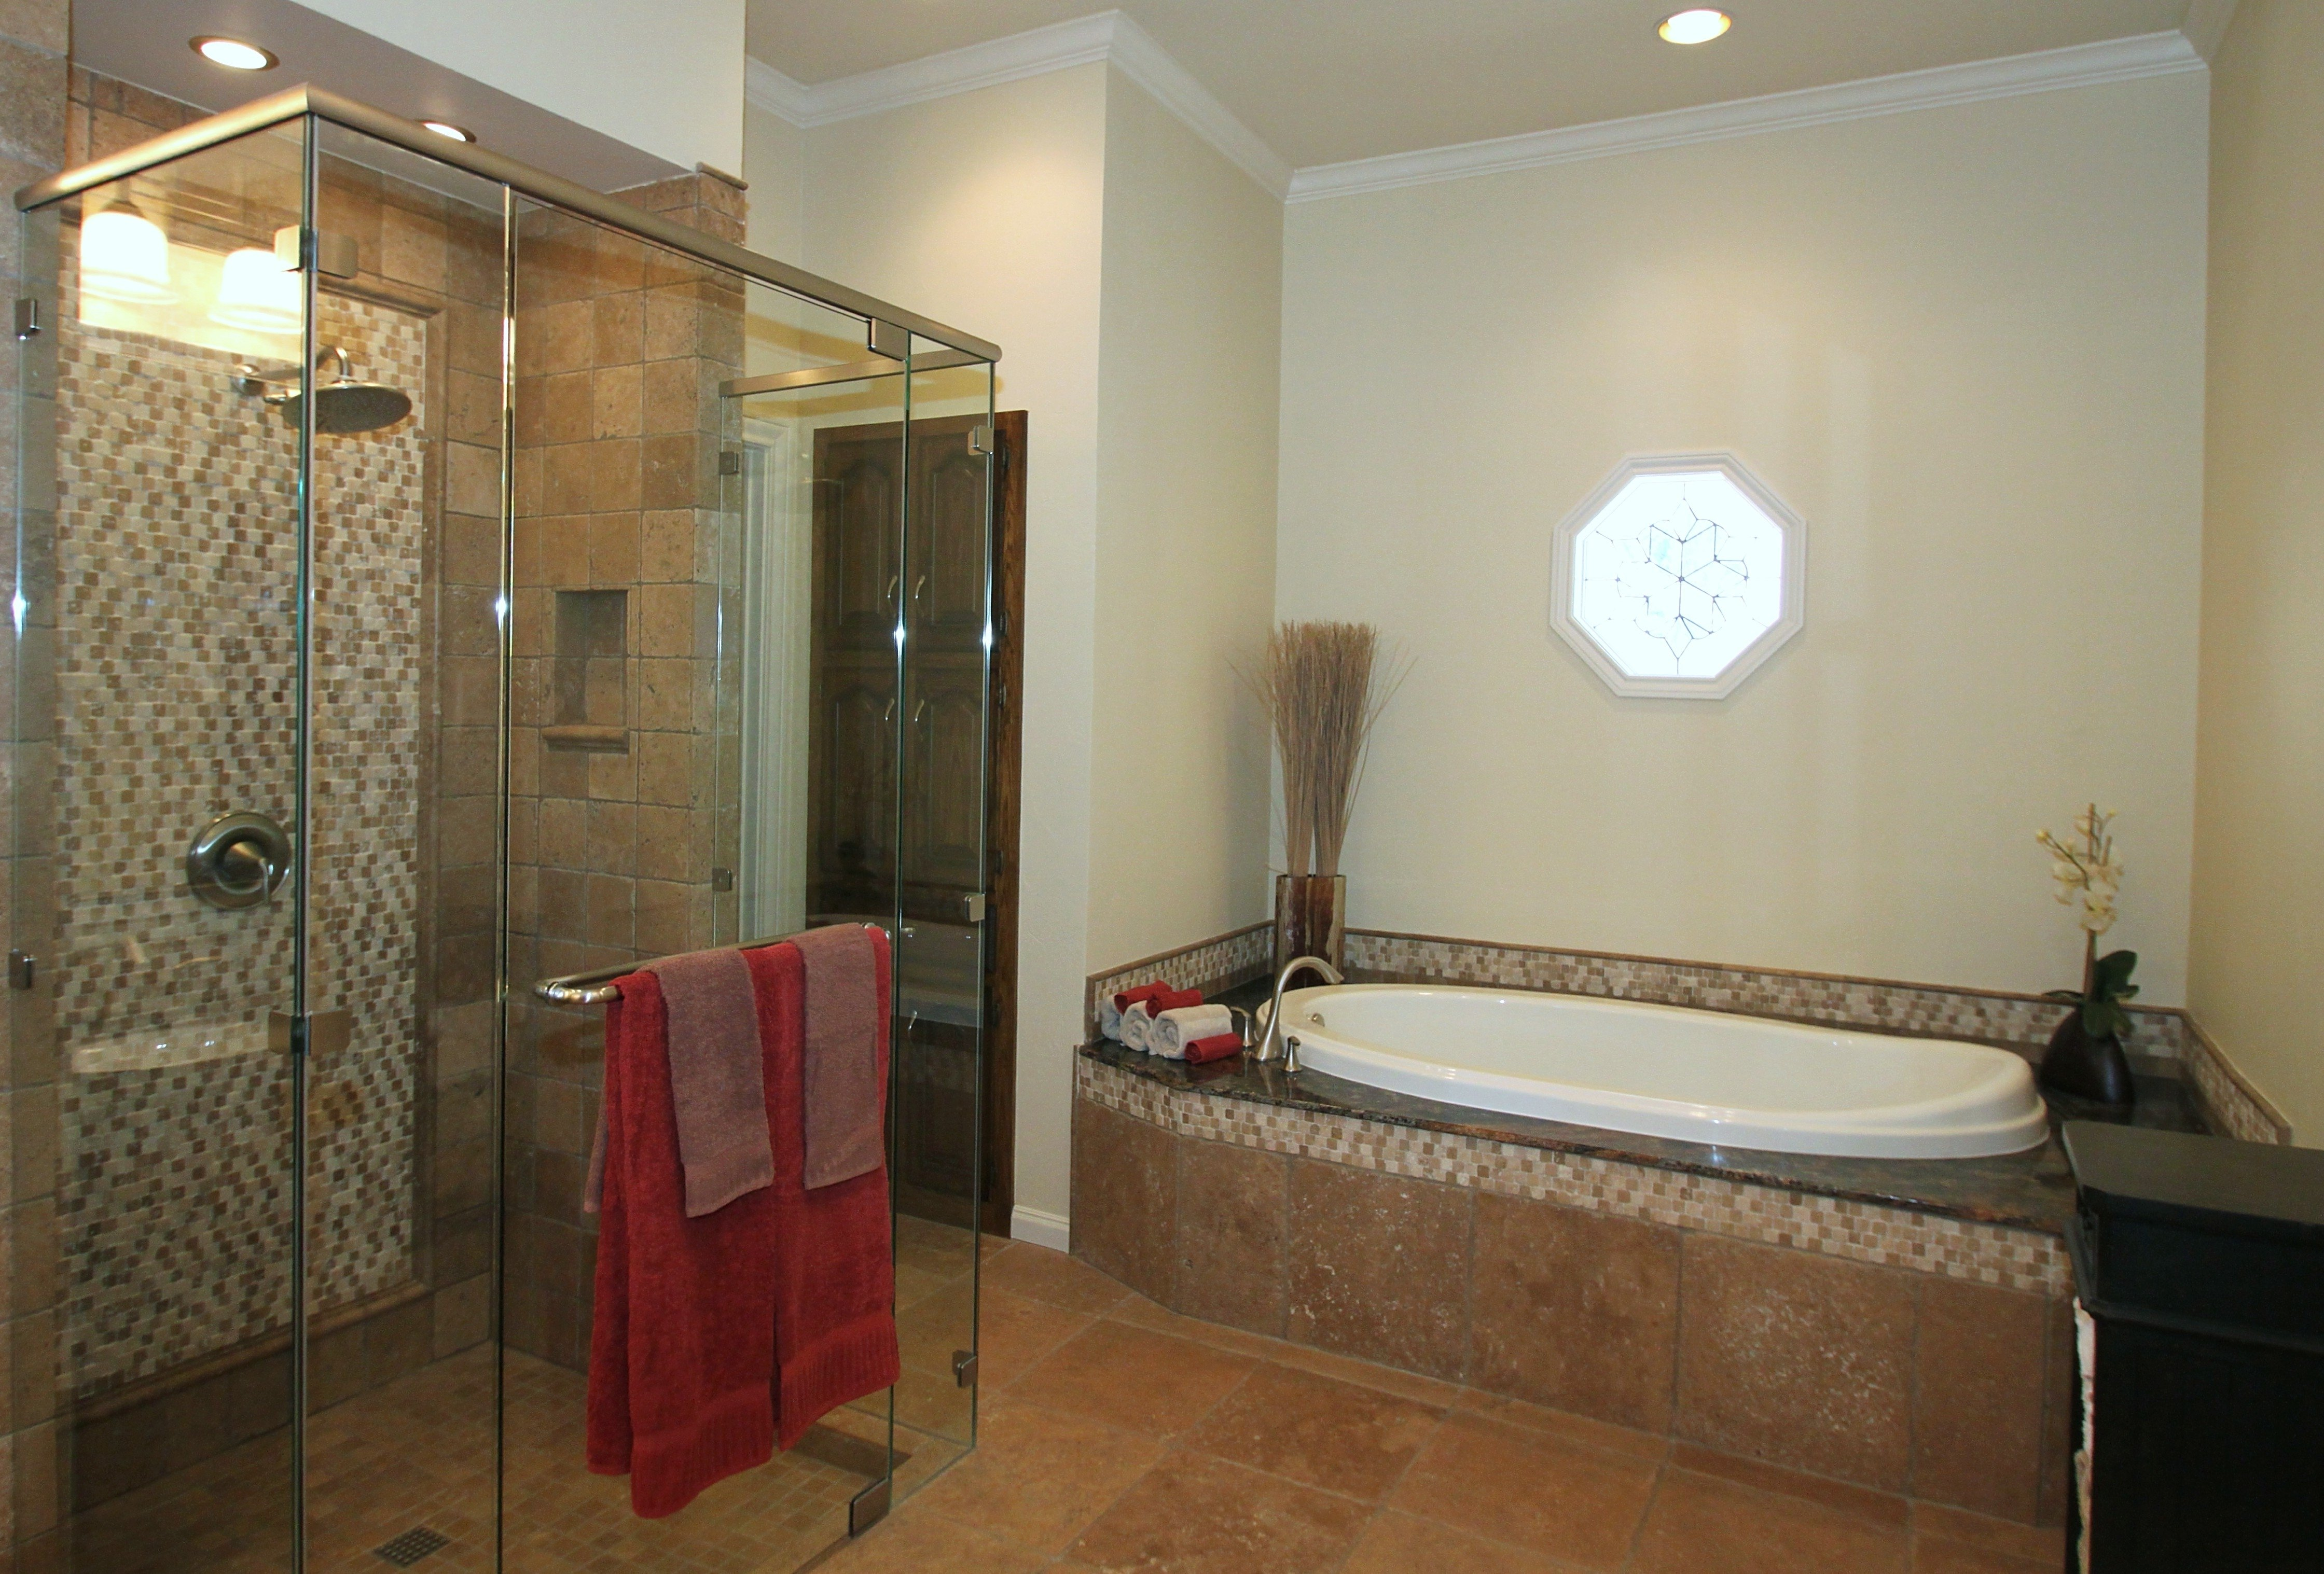 10 Most Recommended Master Bathroom Ideas Photo Gallery 69 most supreme bathroom ideas images styles master photo gallery